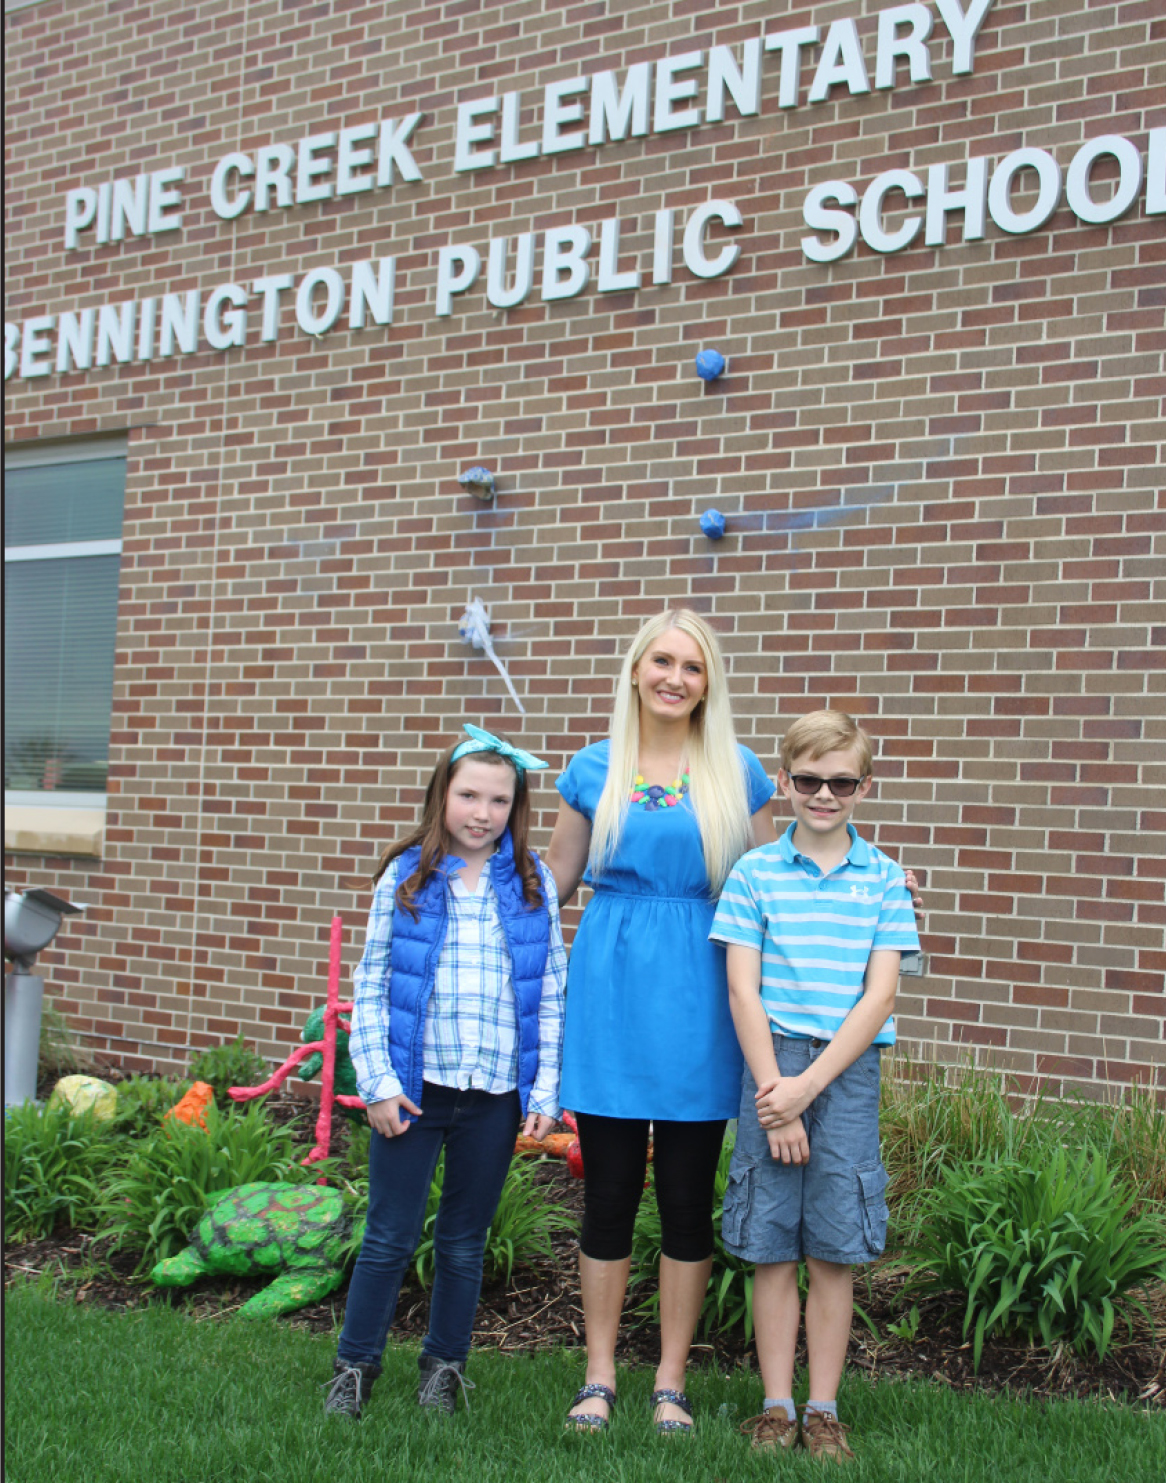 Students Alexa Hall (first place) and Max Elwood (second place) at Bennington Elementary School, taught by Mrs. Kathleen Cannon.